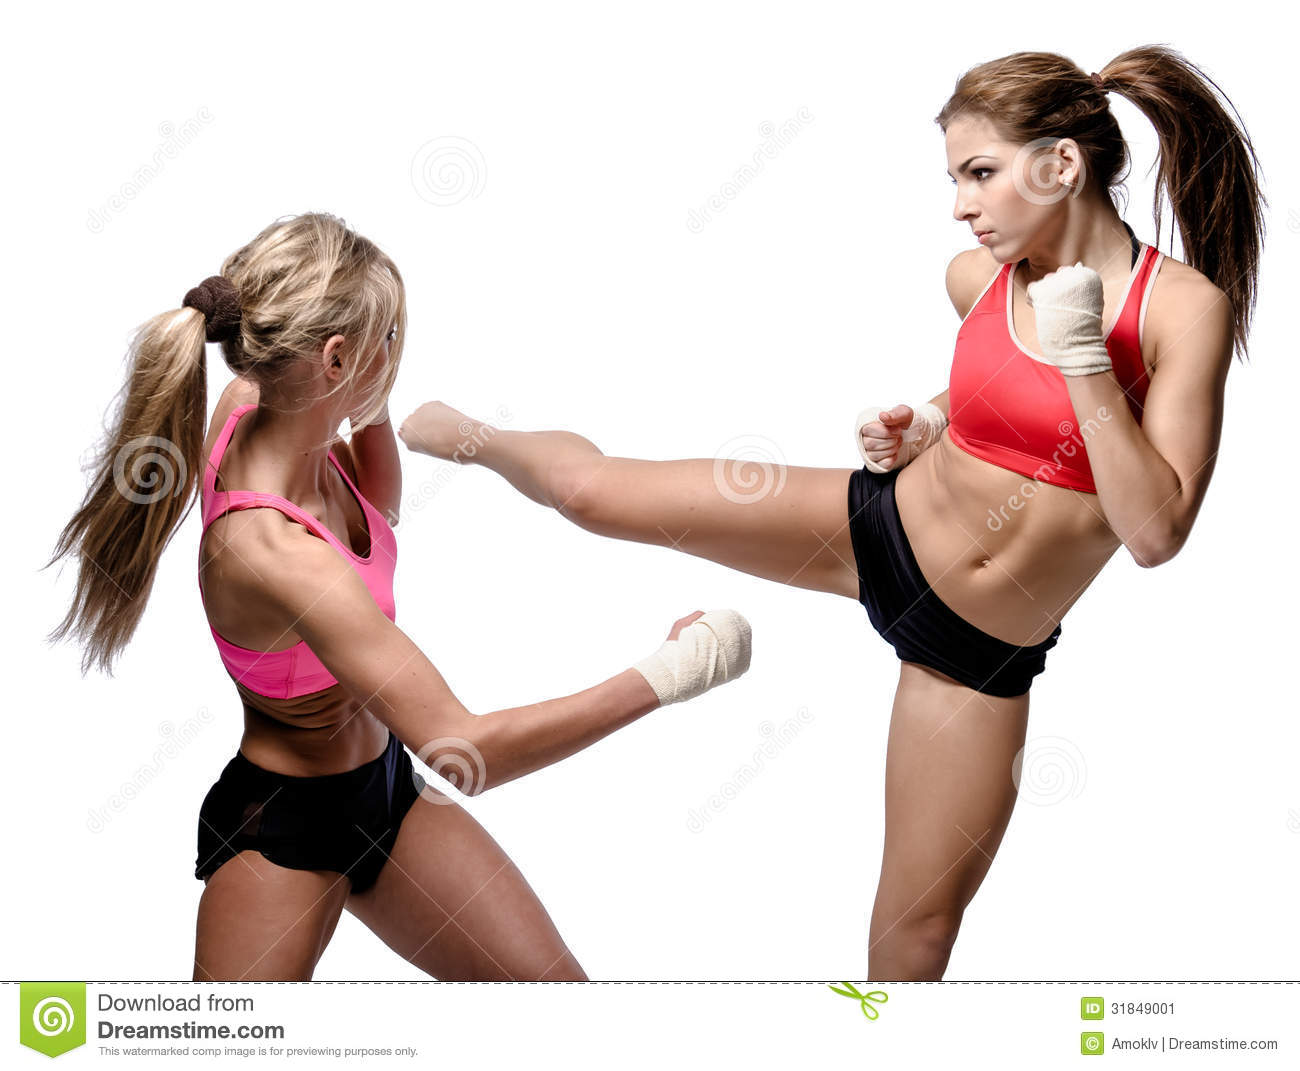 Two girls are fighting like crazy one gets fucked 10